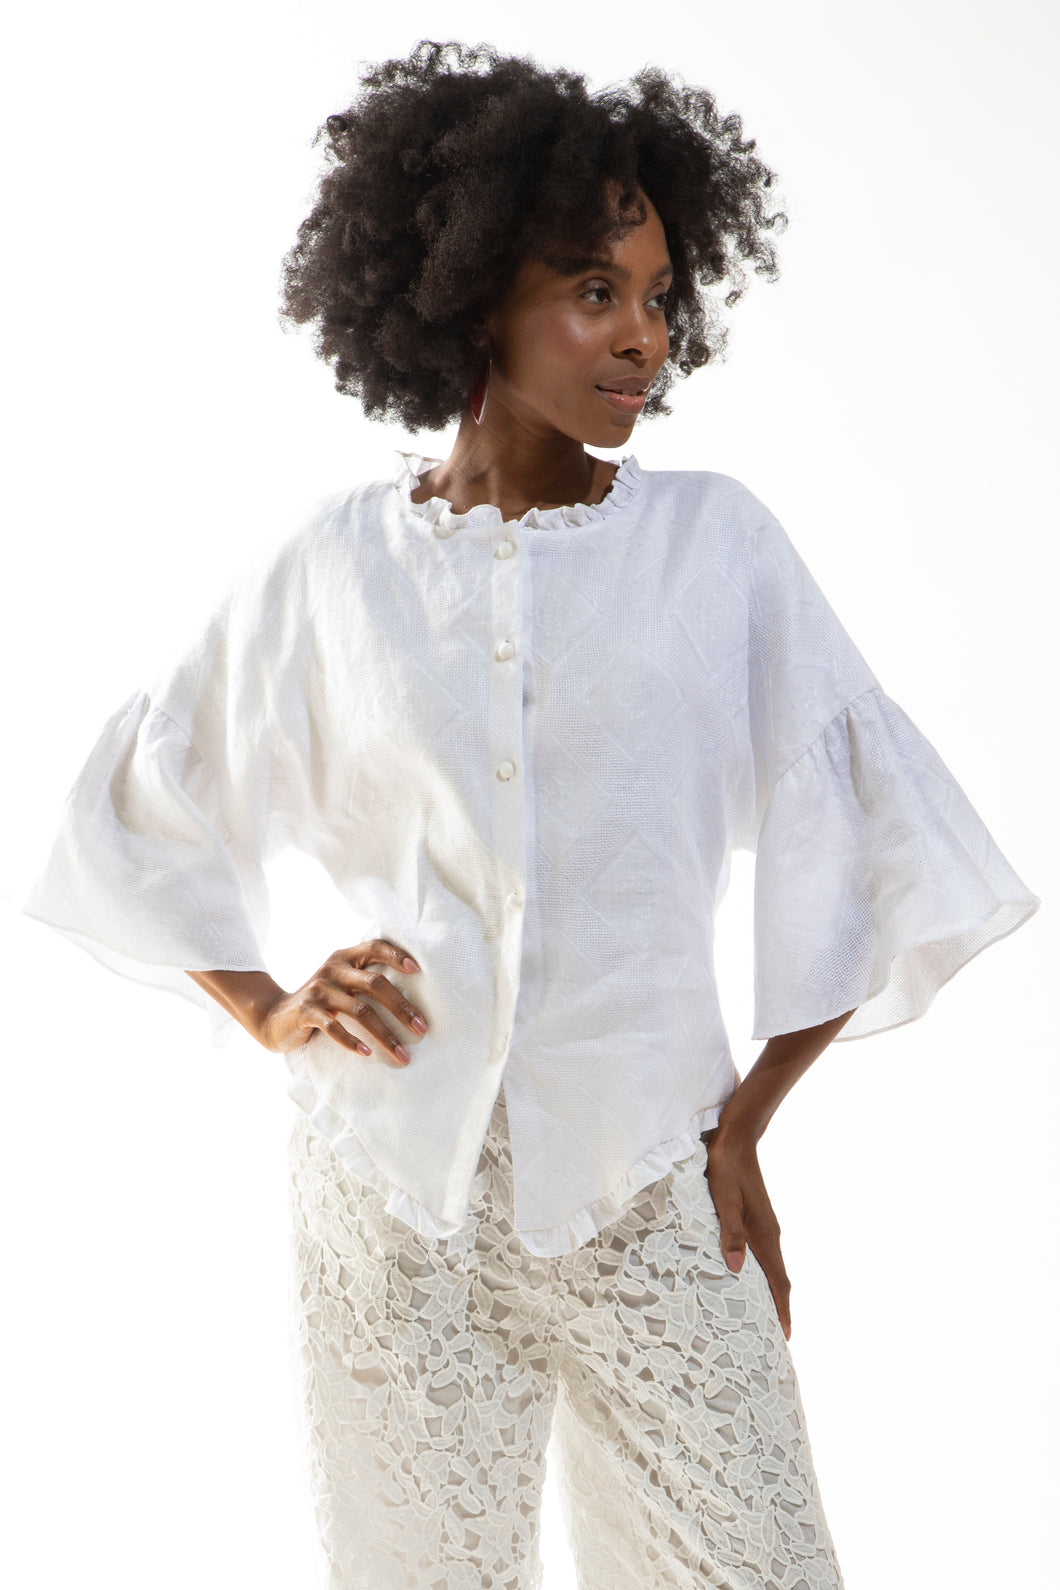 Made in NYC: Jacket with Ruffle Detail (White) Style #216